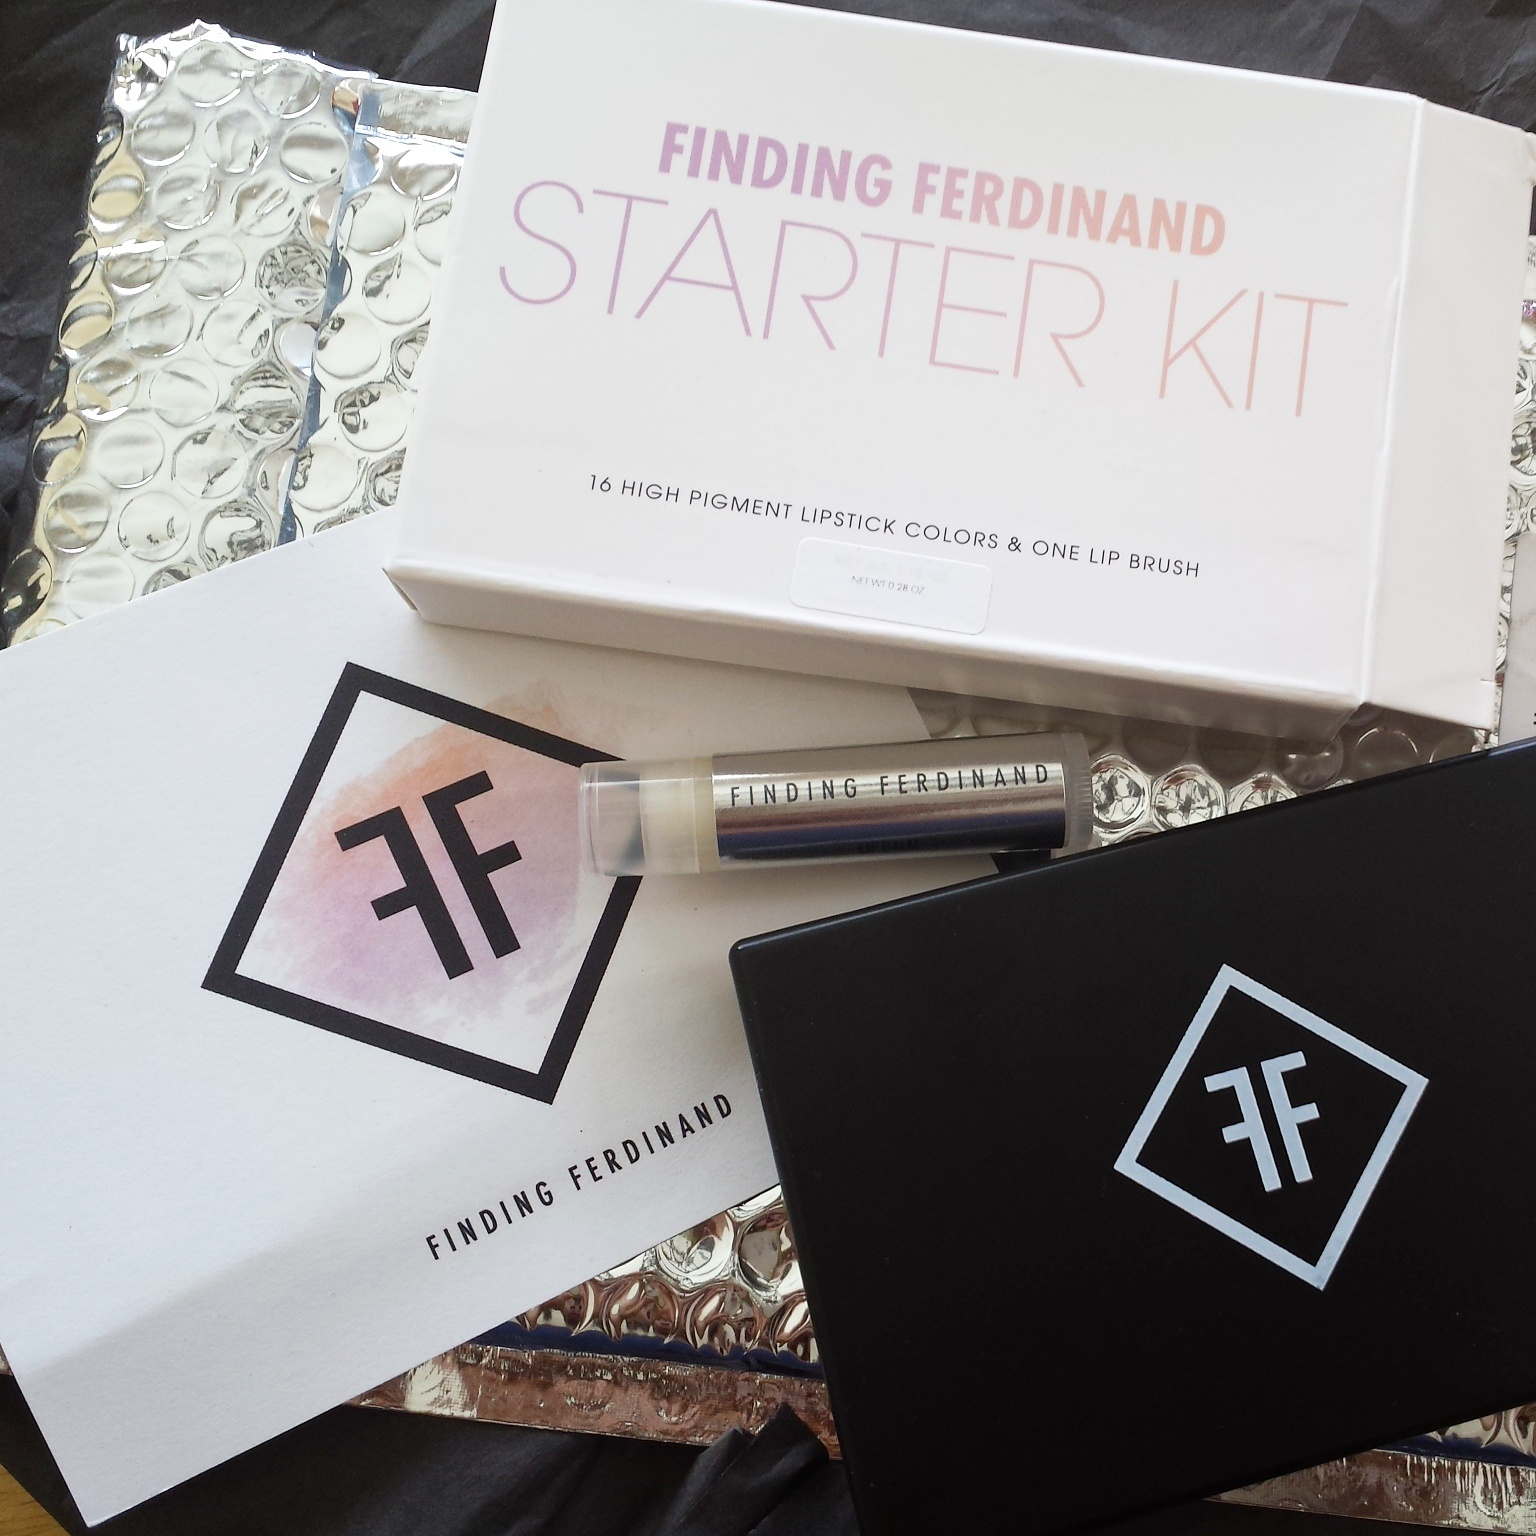 finding ferdinand, custom lipstick, starter kit, ffgirl, ffstarterkit, indie beauty, products, independent, makeup, lippies, made in ny, new york, made in the us, usa, nhu, packed party, happy holidaze